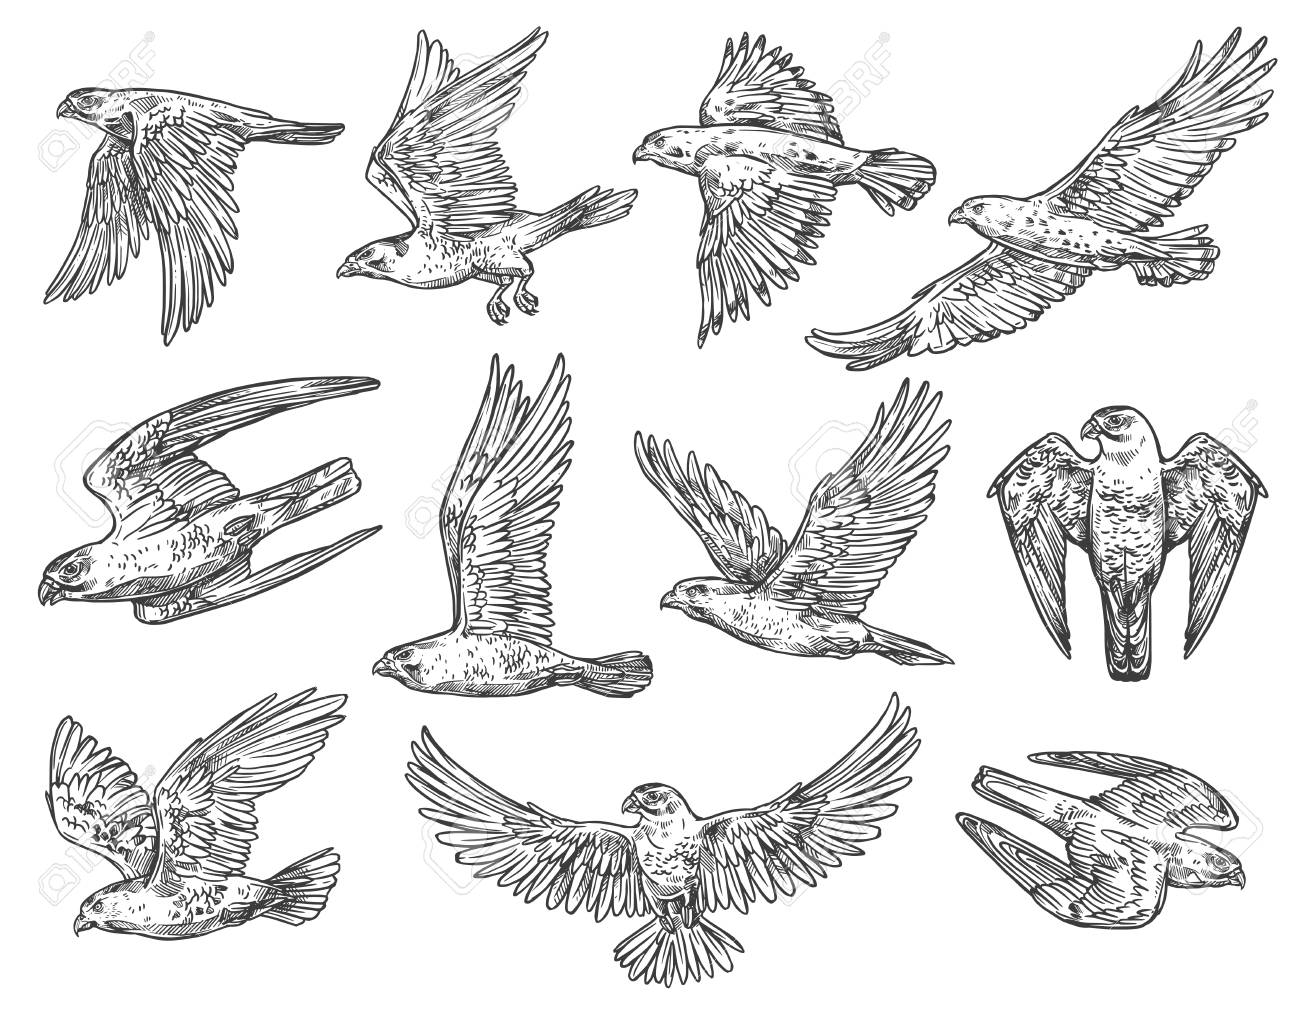 Eagle, hawk and falcon sketches with flying birds of prey. - 113538587